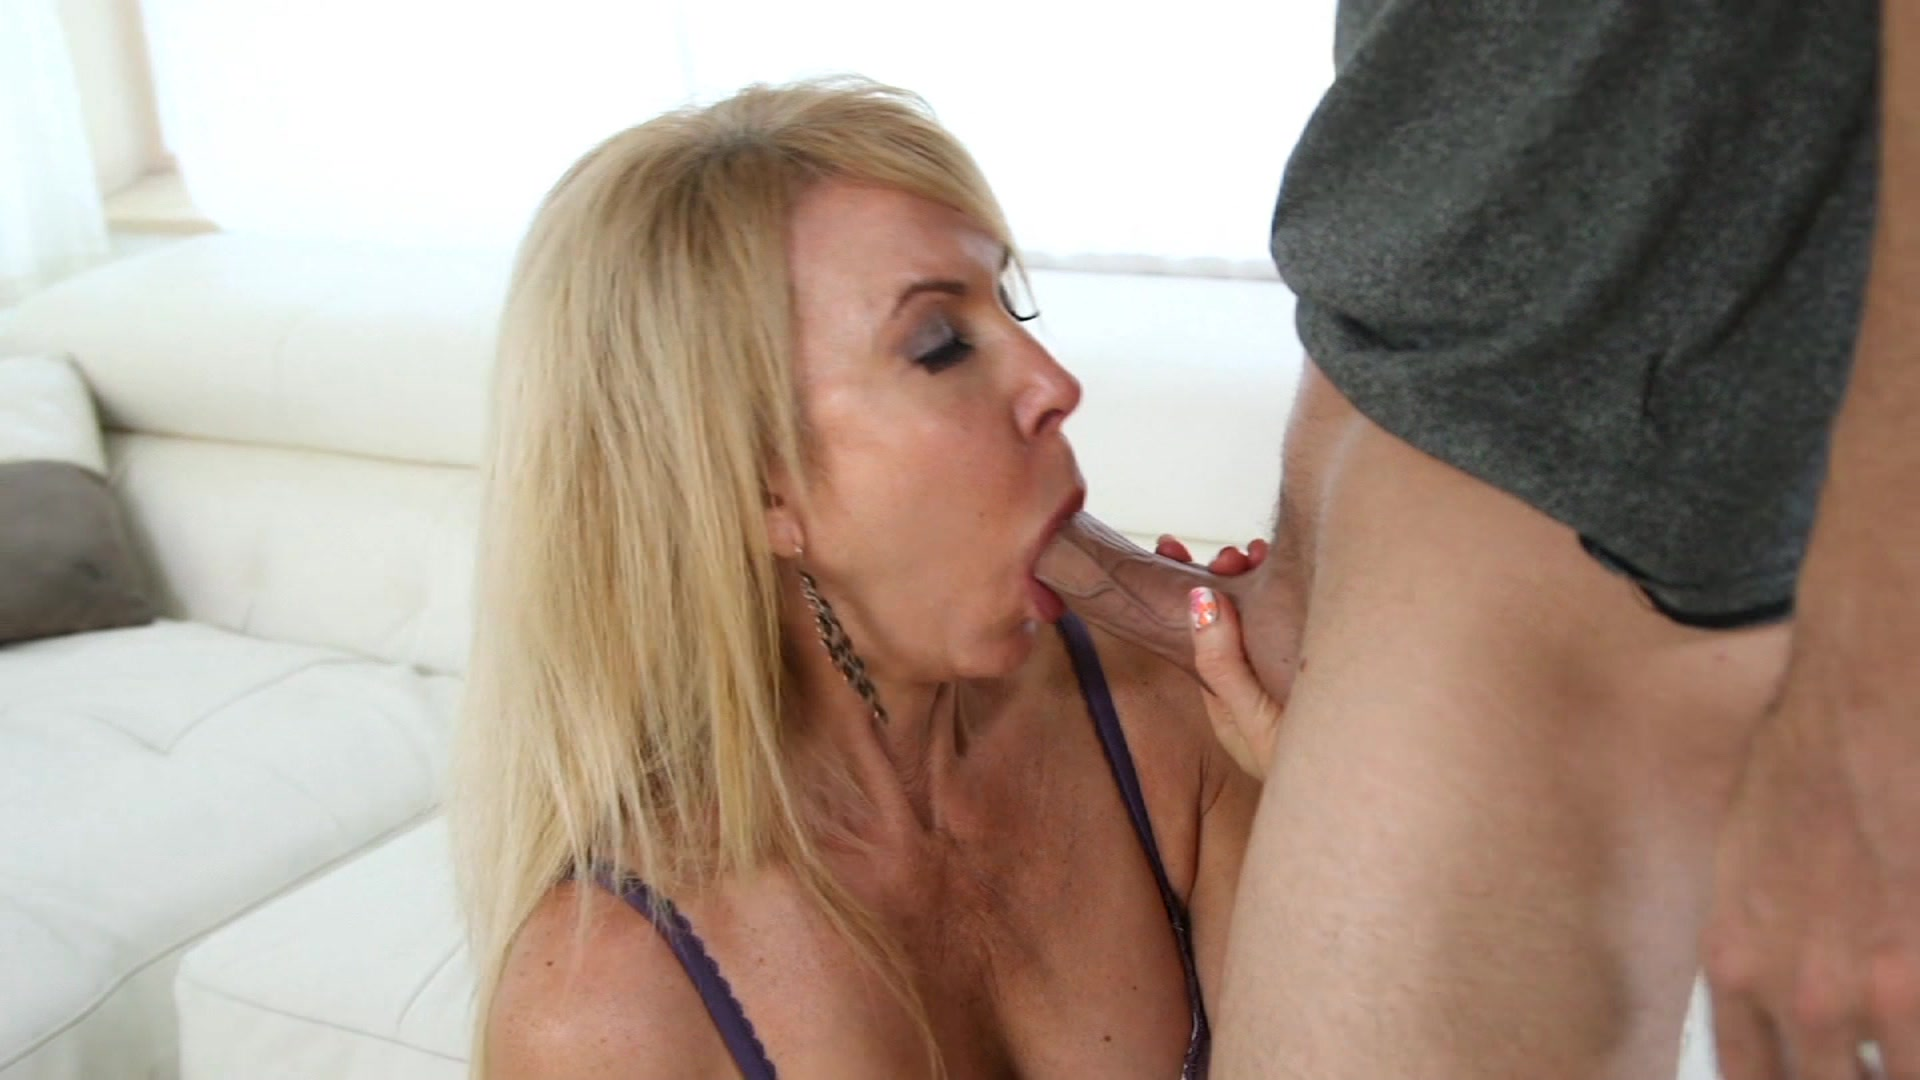 Kianna bradley strokes and licks a cock until she gets cum - 1 part 10